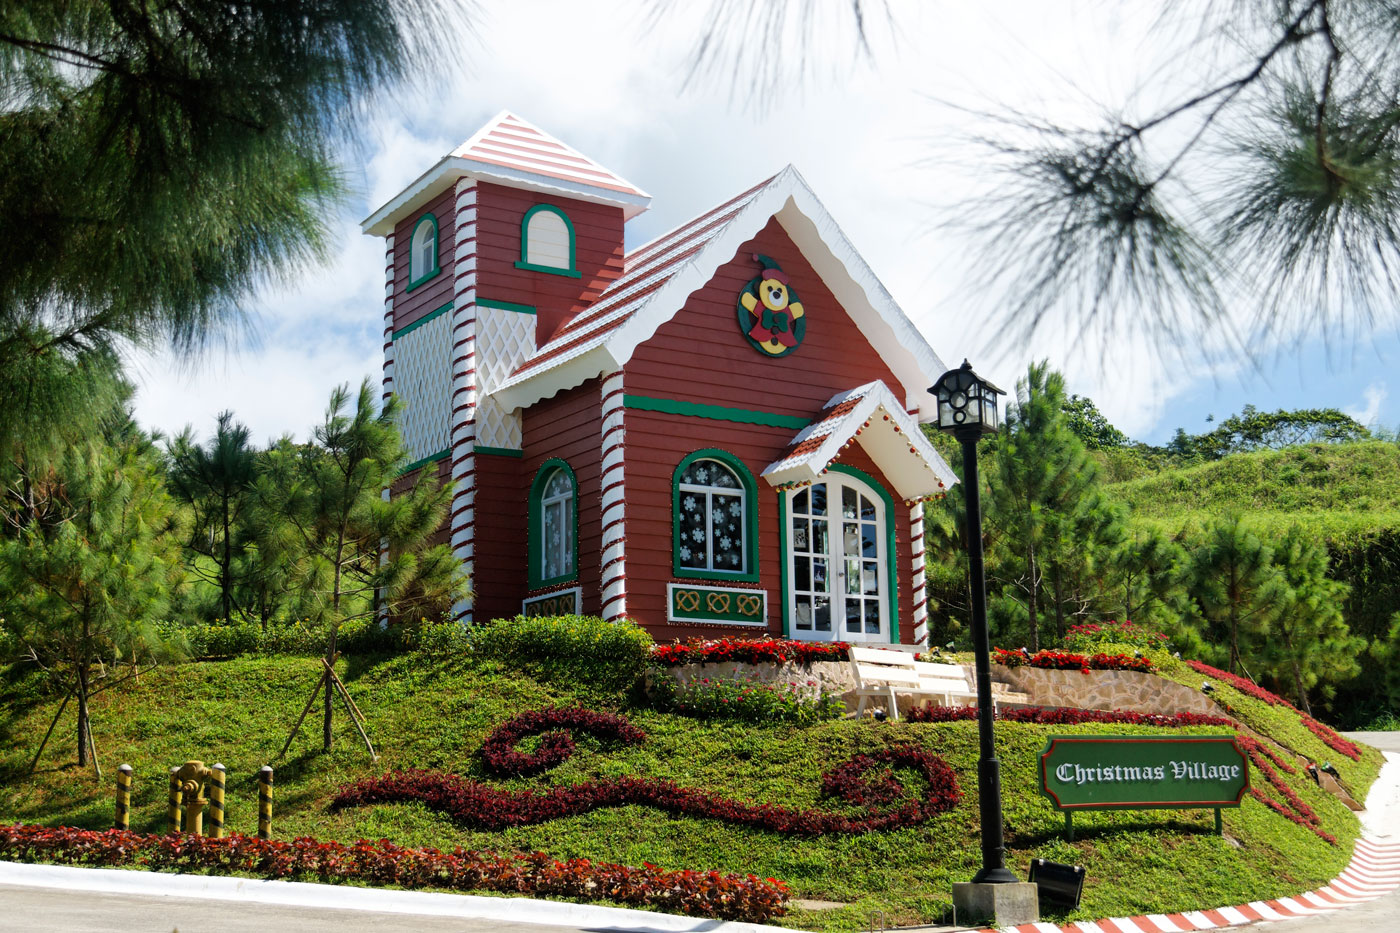 Crosswinds resort suites tagaytay by hii - Crosswinds tagaytay swimming pool ...